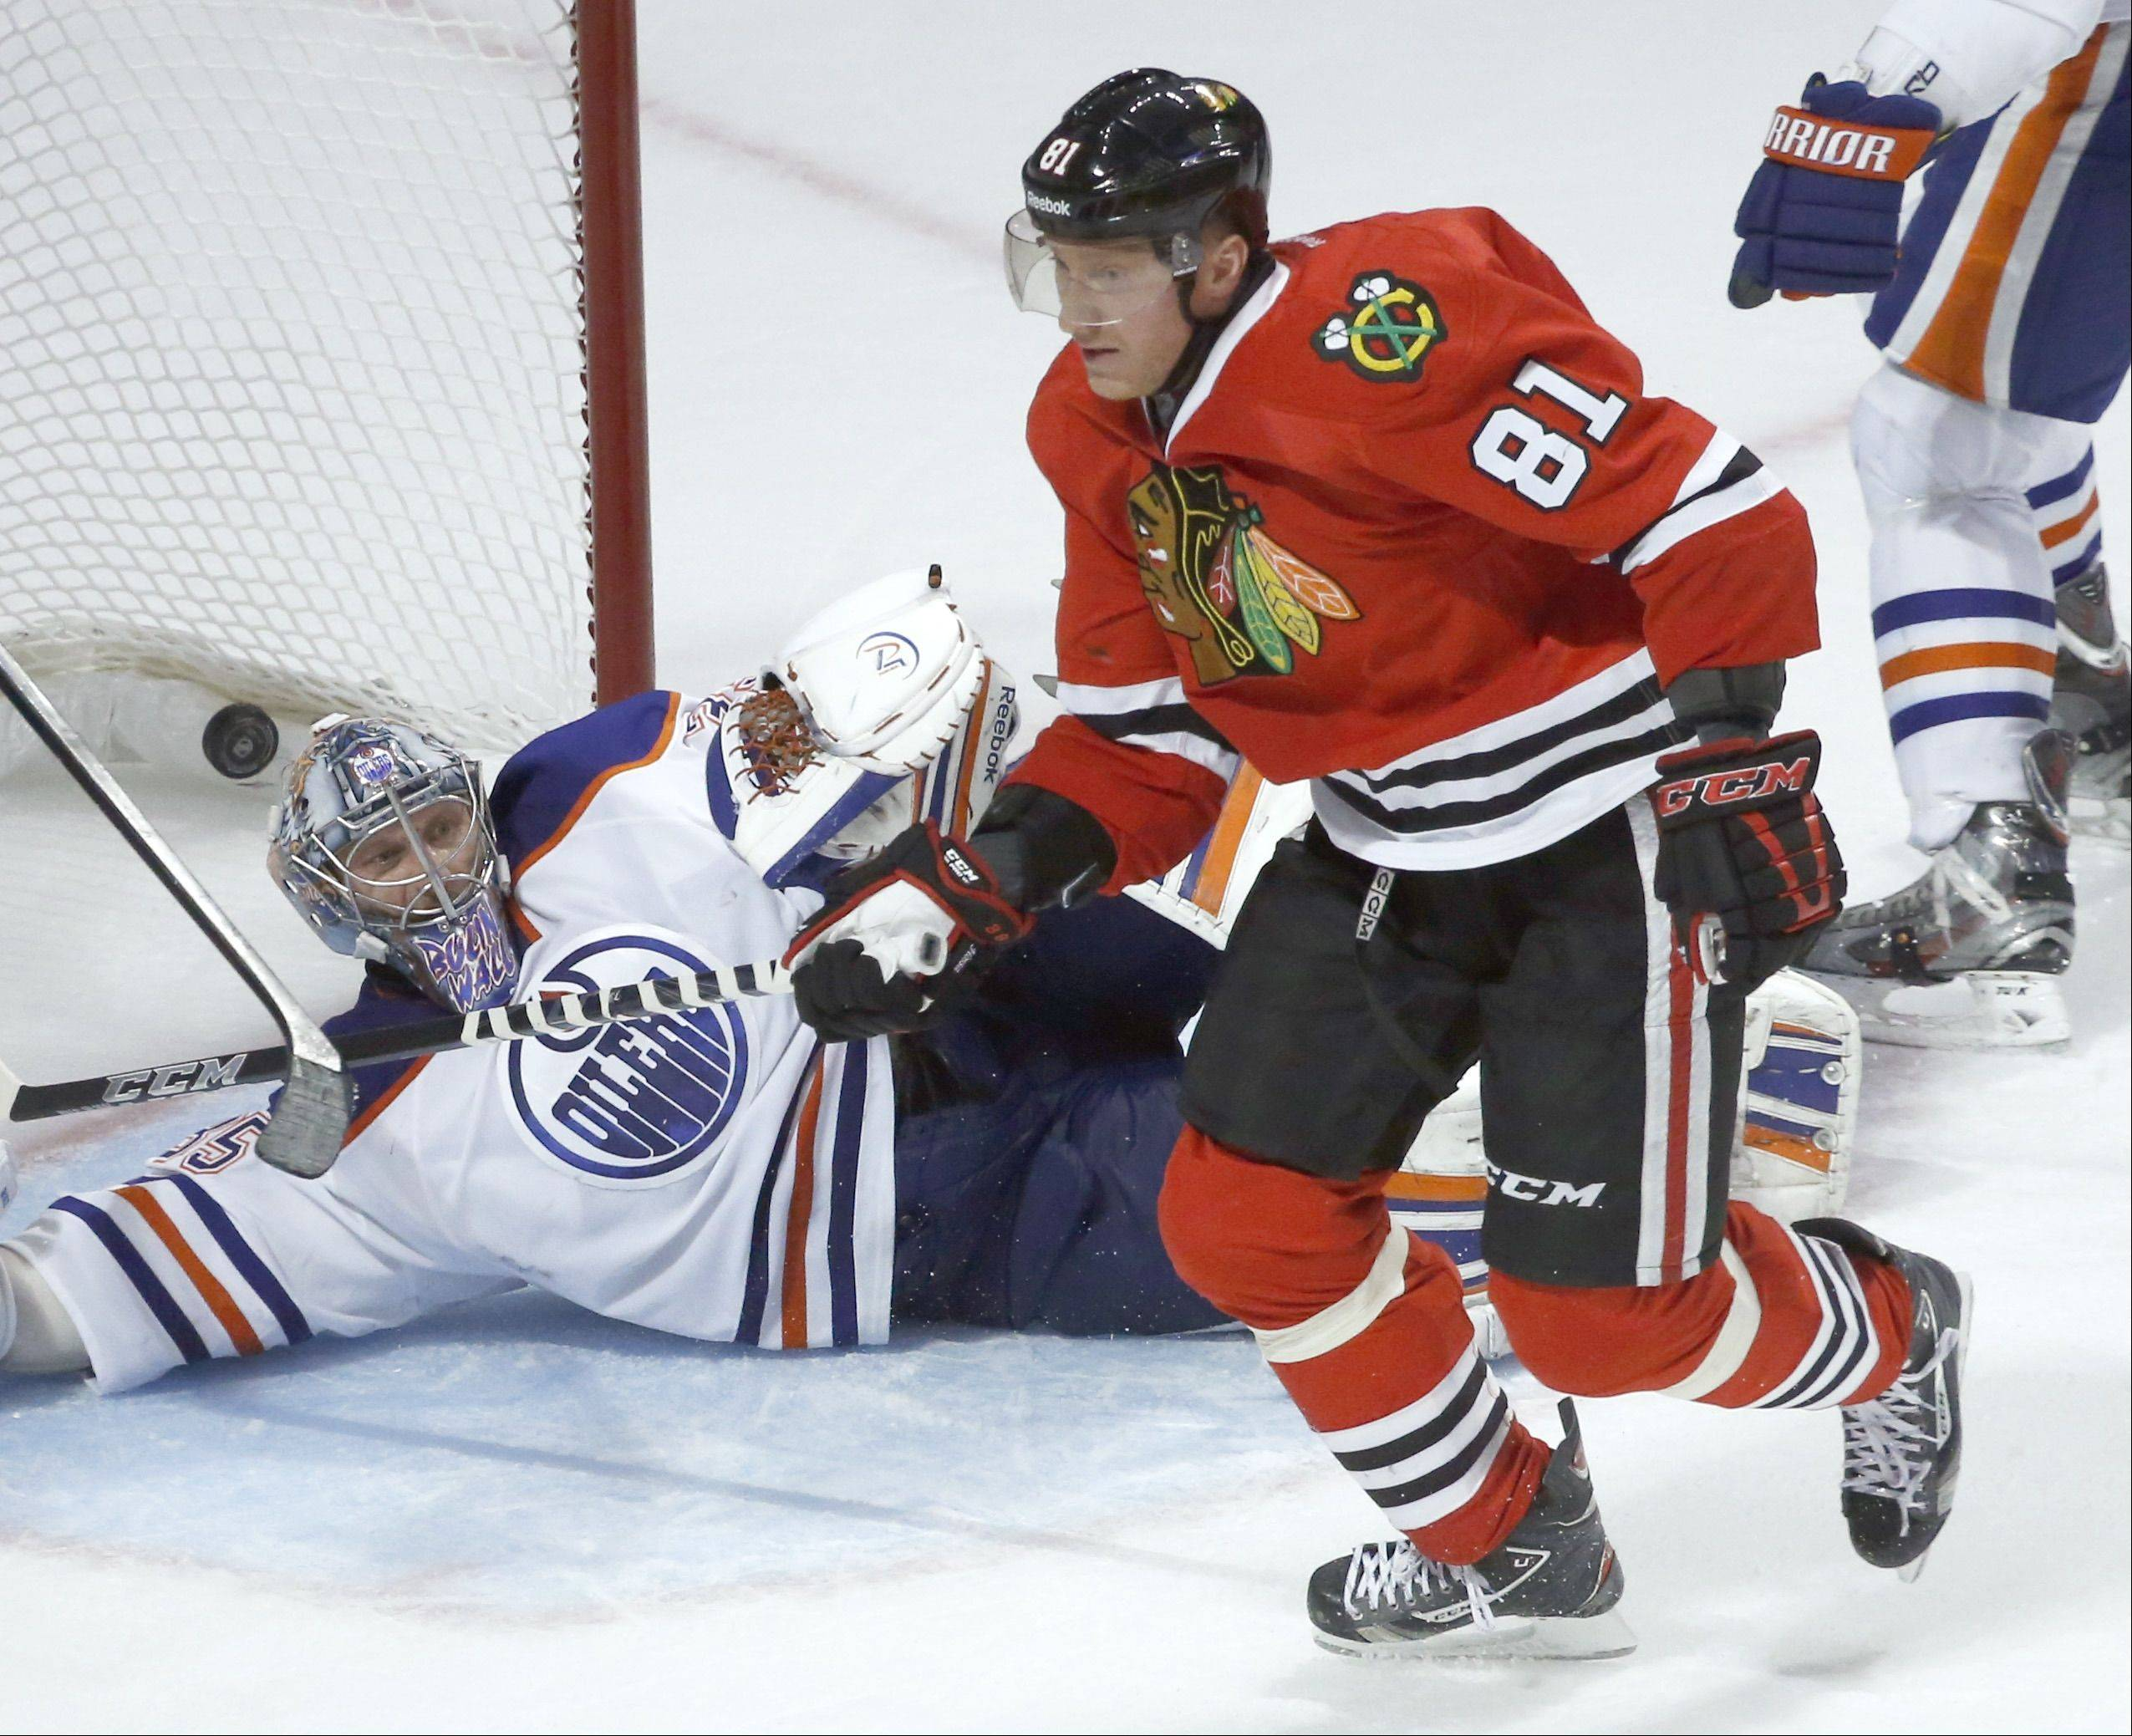 Marian Hossa (81) begins to celebrate after scoring the winning goal past Edmonton Oilers goalie Nikolai Khabibulin in overtime Feb. 25 at the United Center. The Blackhawks won 3-2.